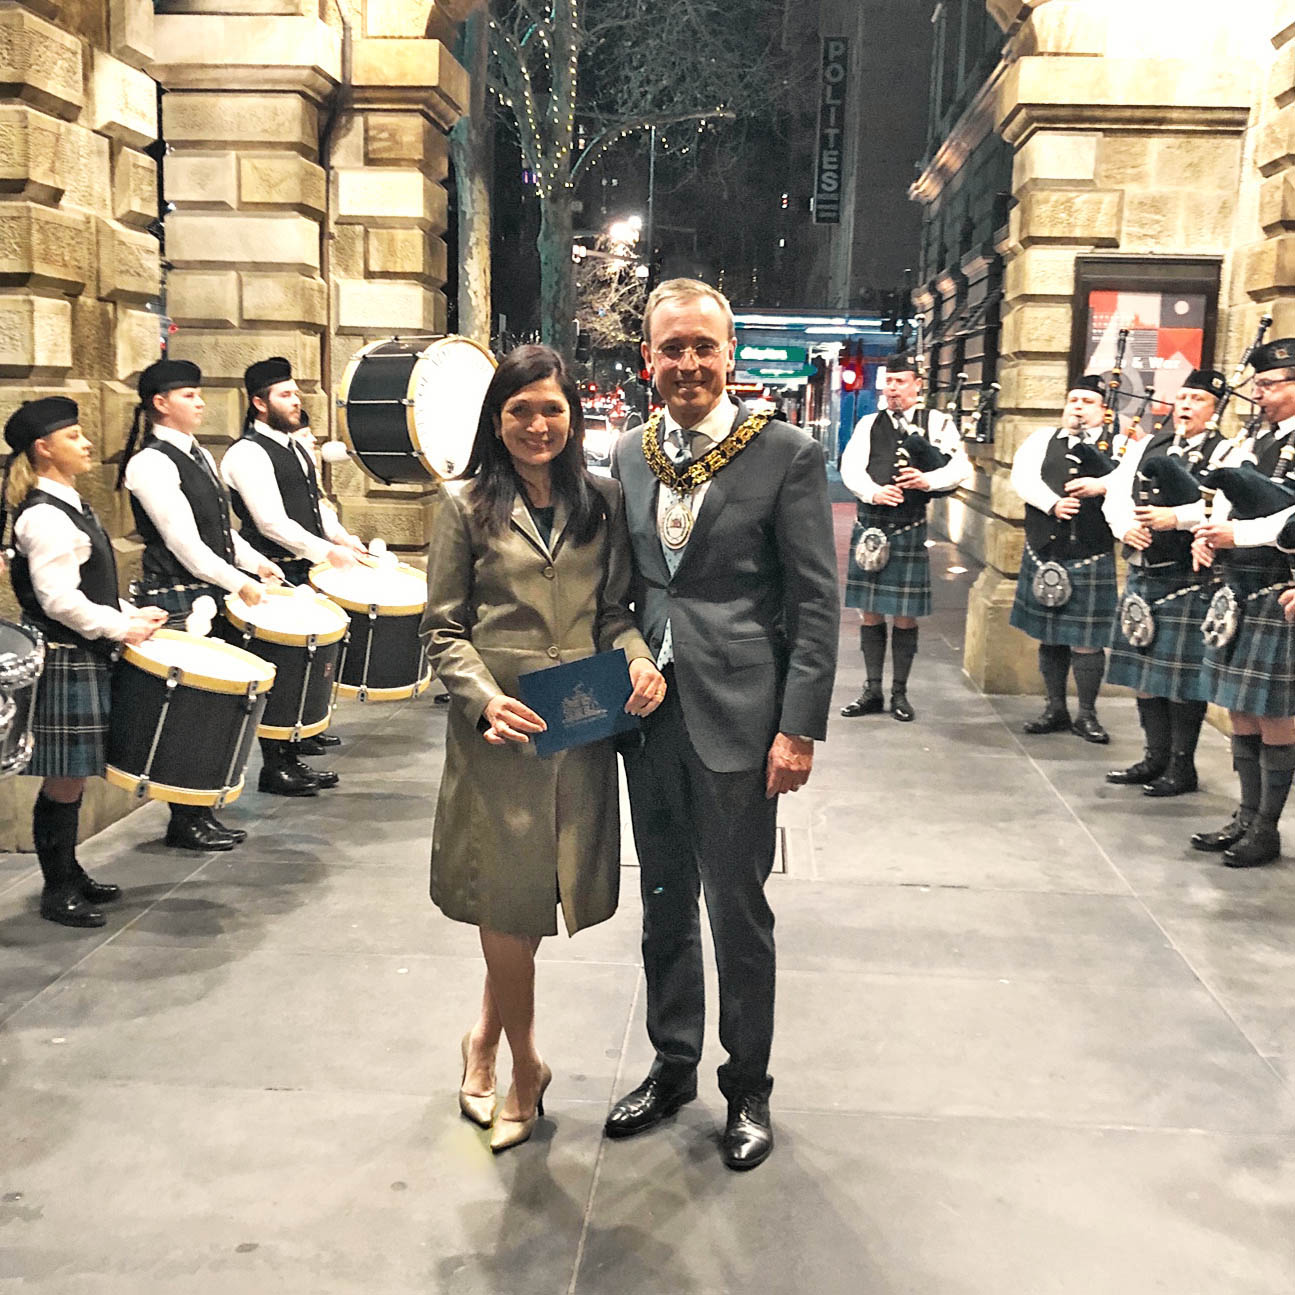 City of Adelaide Pipe Band with Lord Mayor Martin Haese and Lady Mayoress Genevieve Theseira-Haese at Adelaide Town Hall